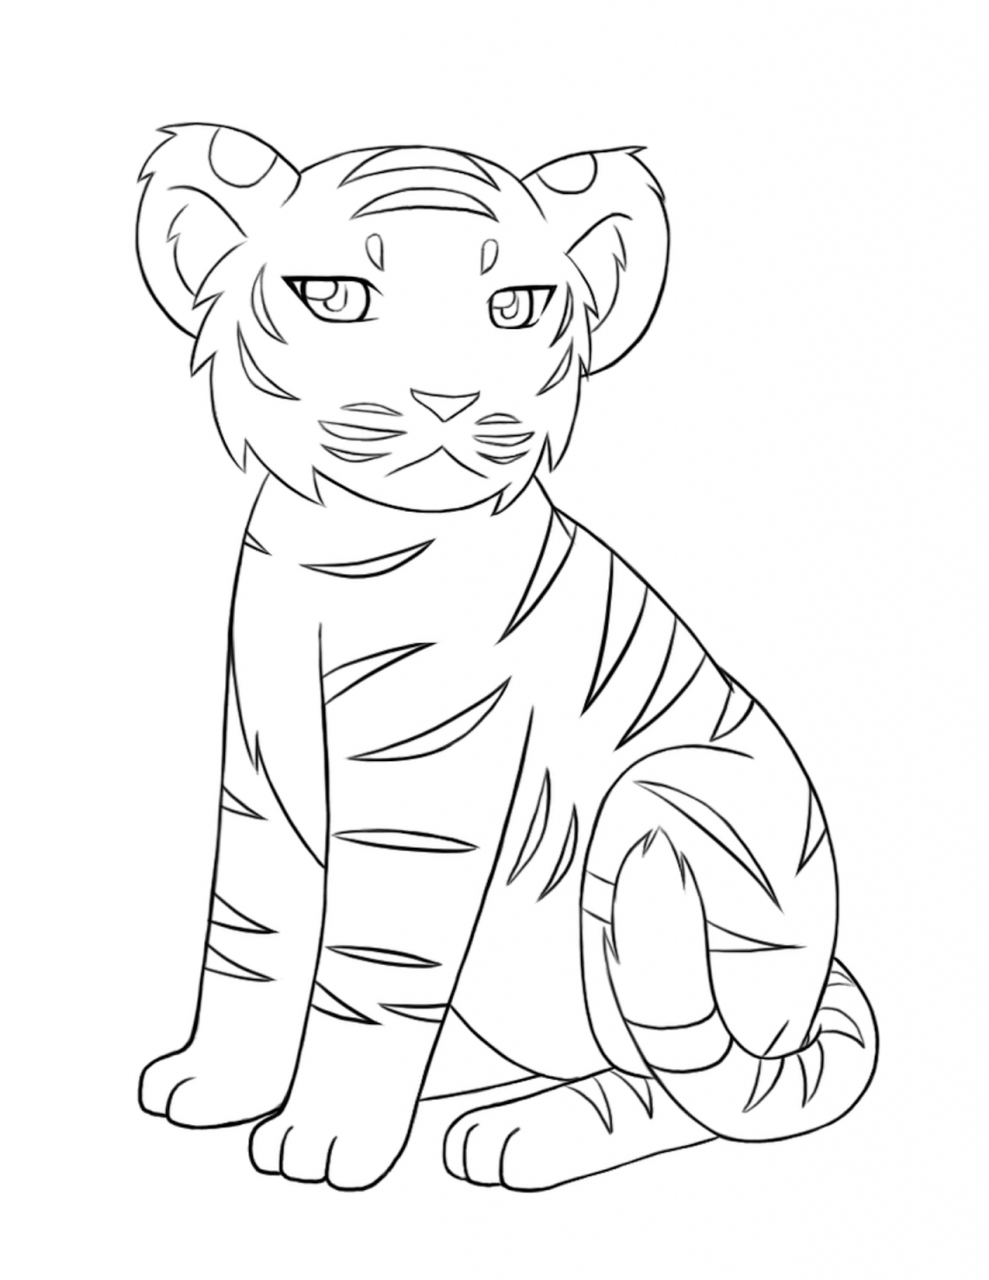 Tiger Coloring Pages to Print Out   21046